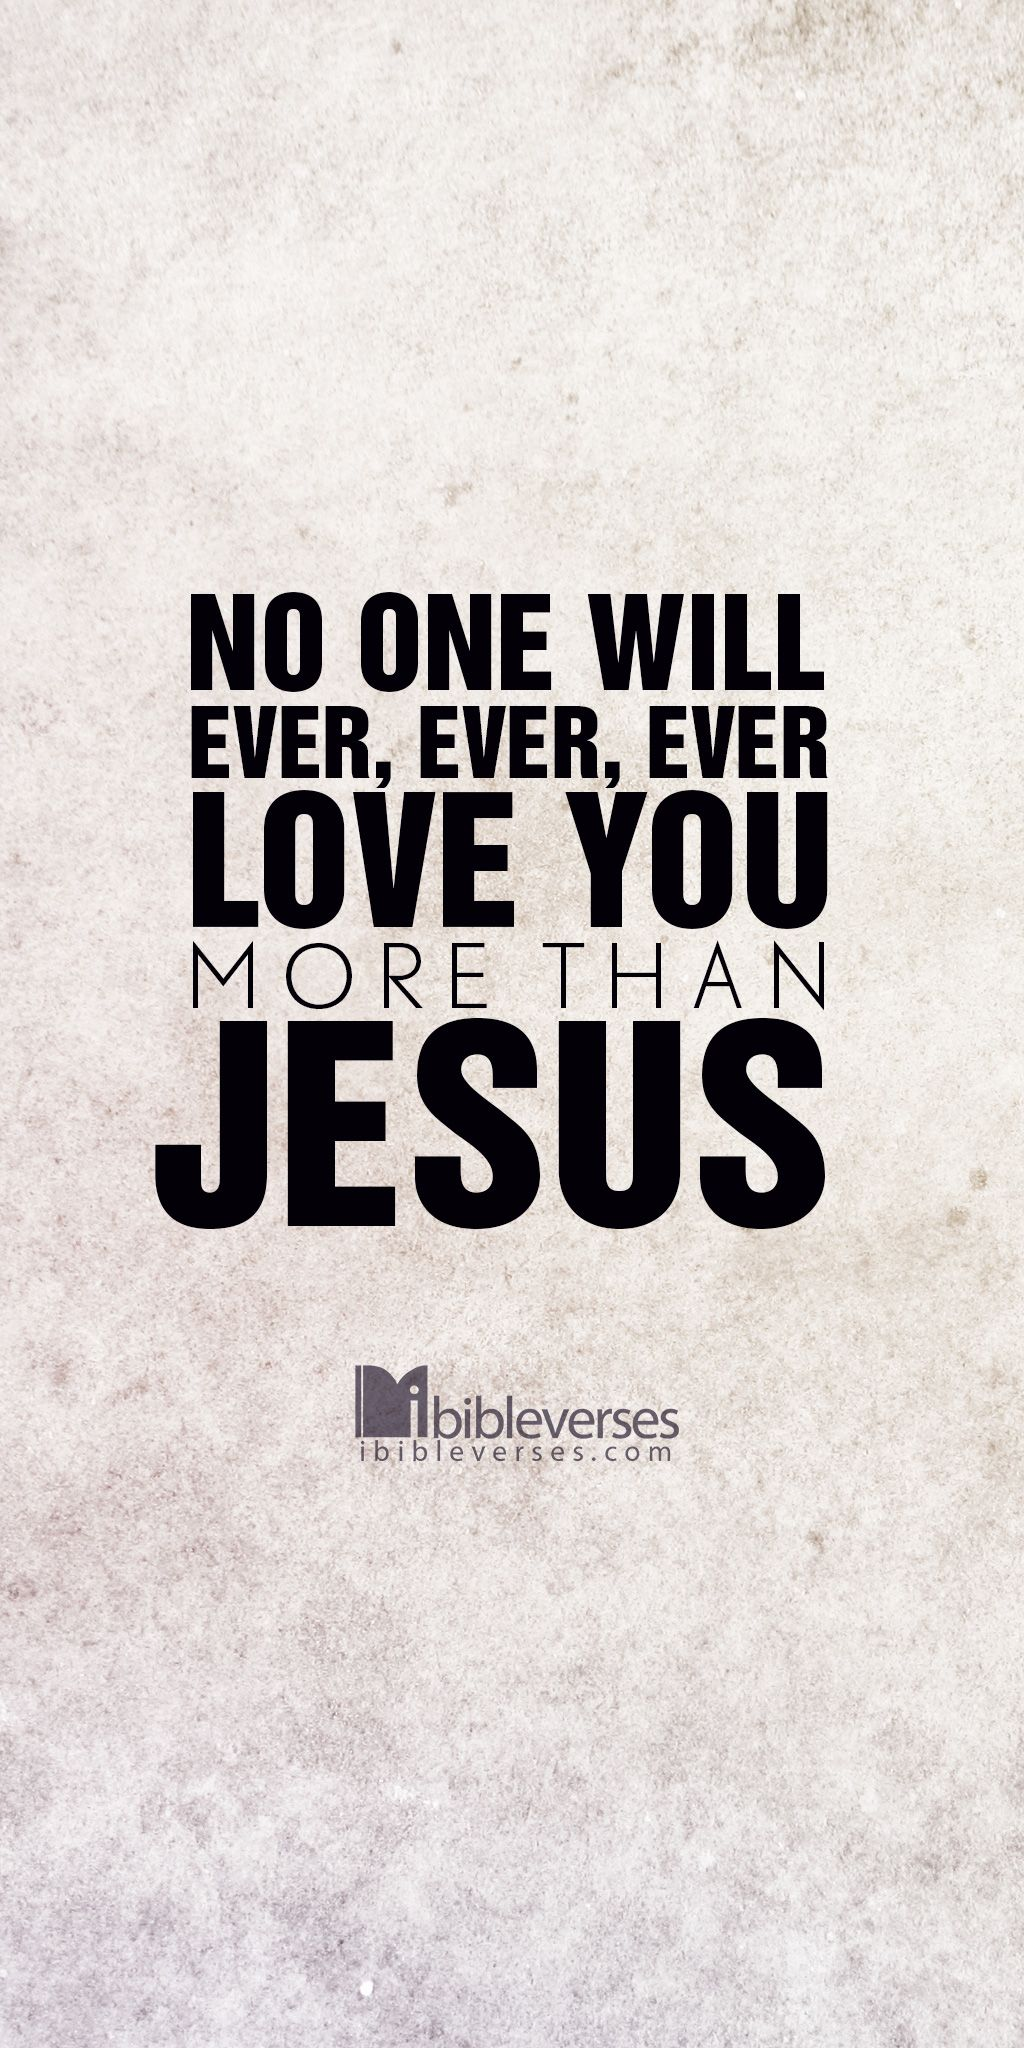 Jesus Quotes On Love Download To Your Mobile At Httpibibleverses.christianpost